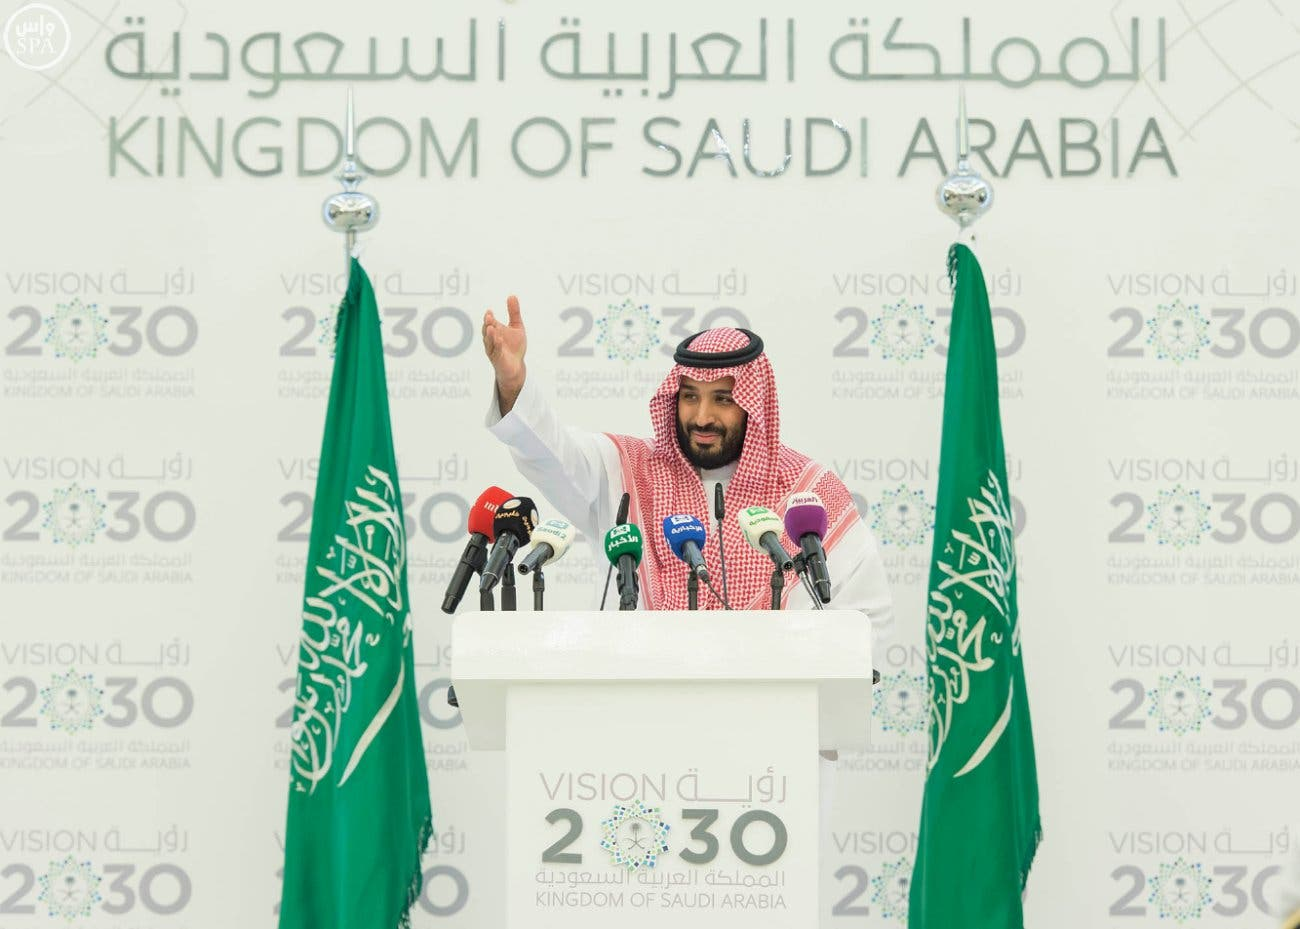 Saudi Deputy Crown Prince Mohammed bin Salman introduces Saudi Vision 2030 during a press conference. (SPA)